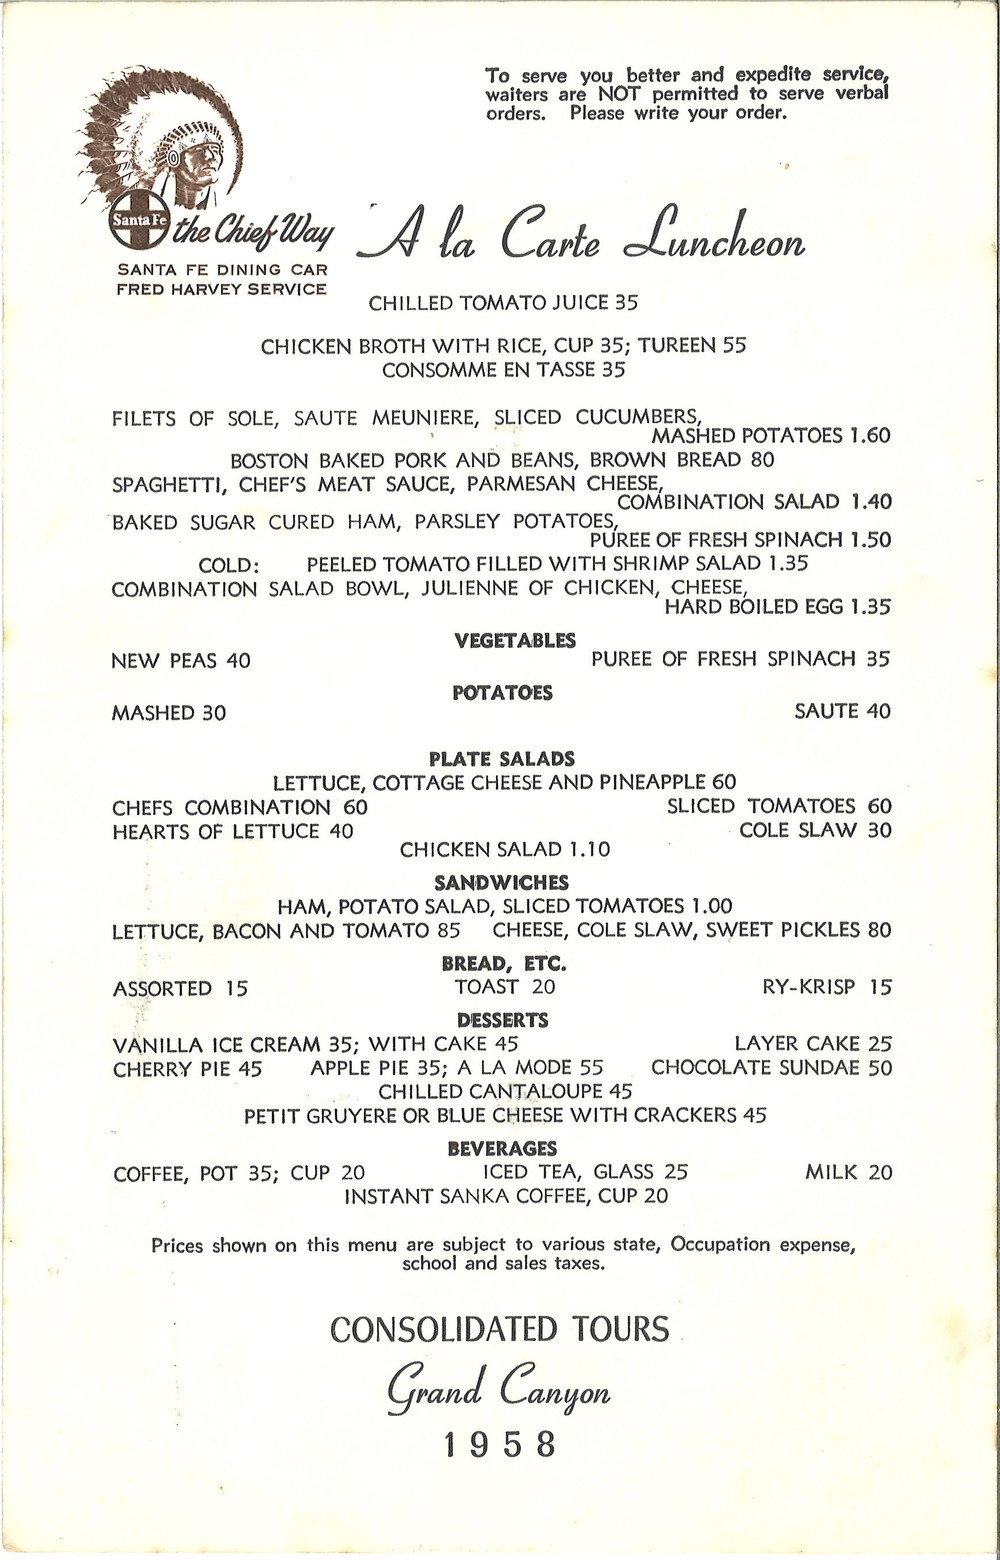 Santa Fe The Chief Way menu.jpg